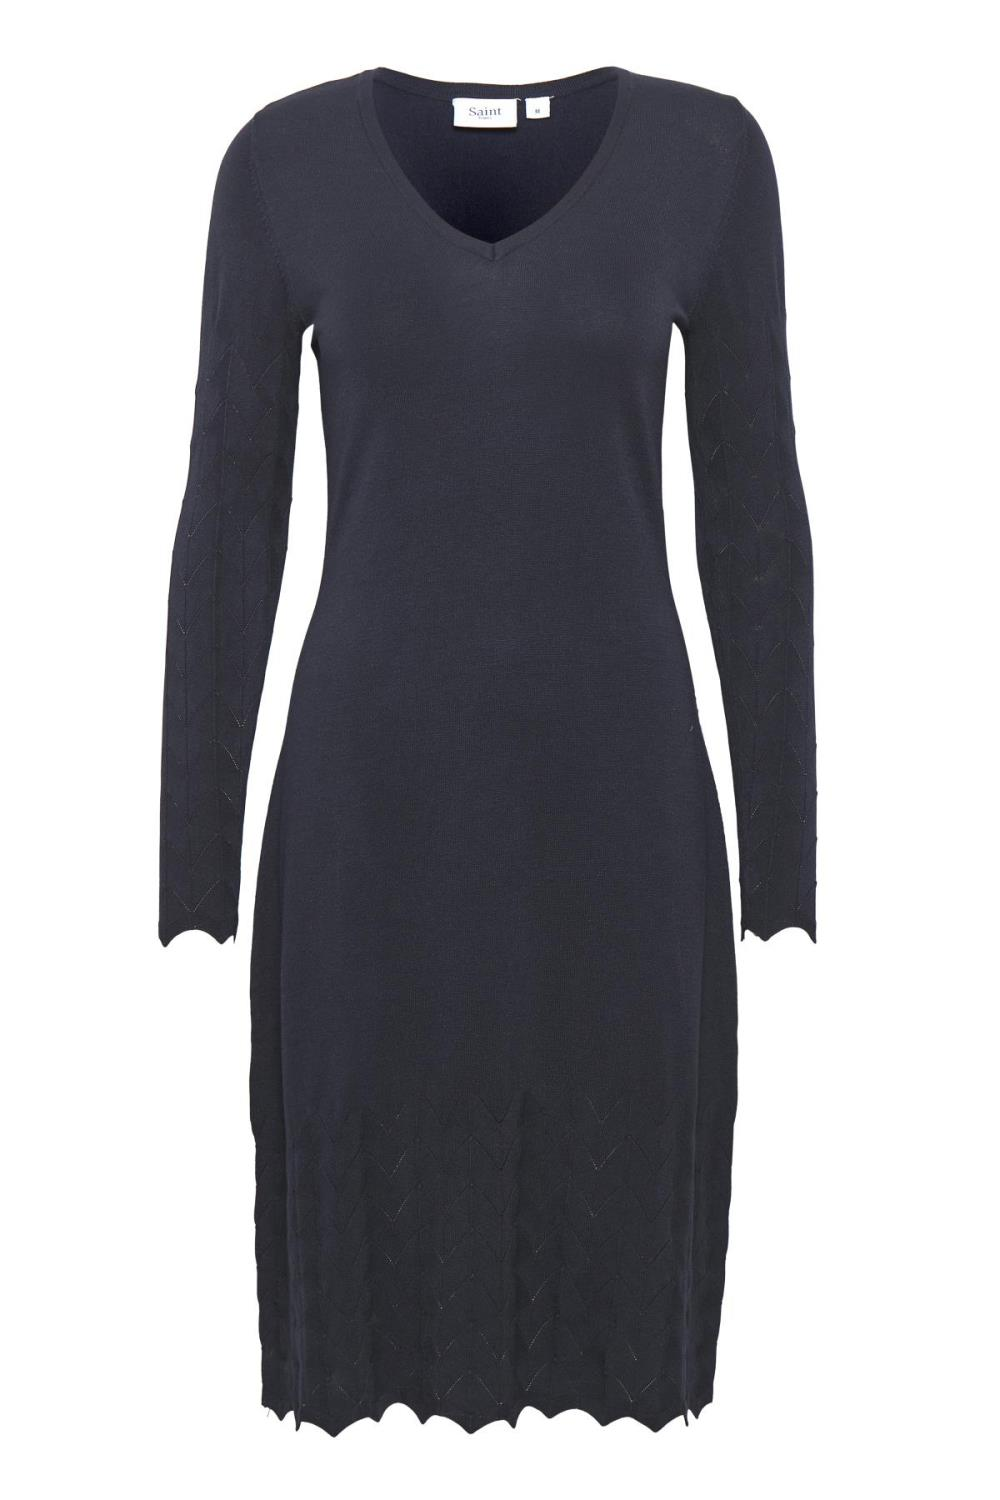 Saint Tropez knitted dress, blue deep